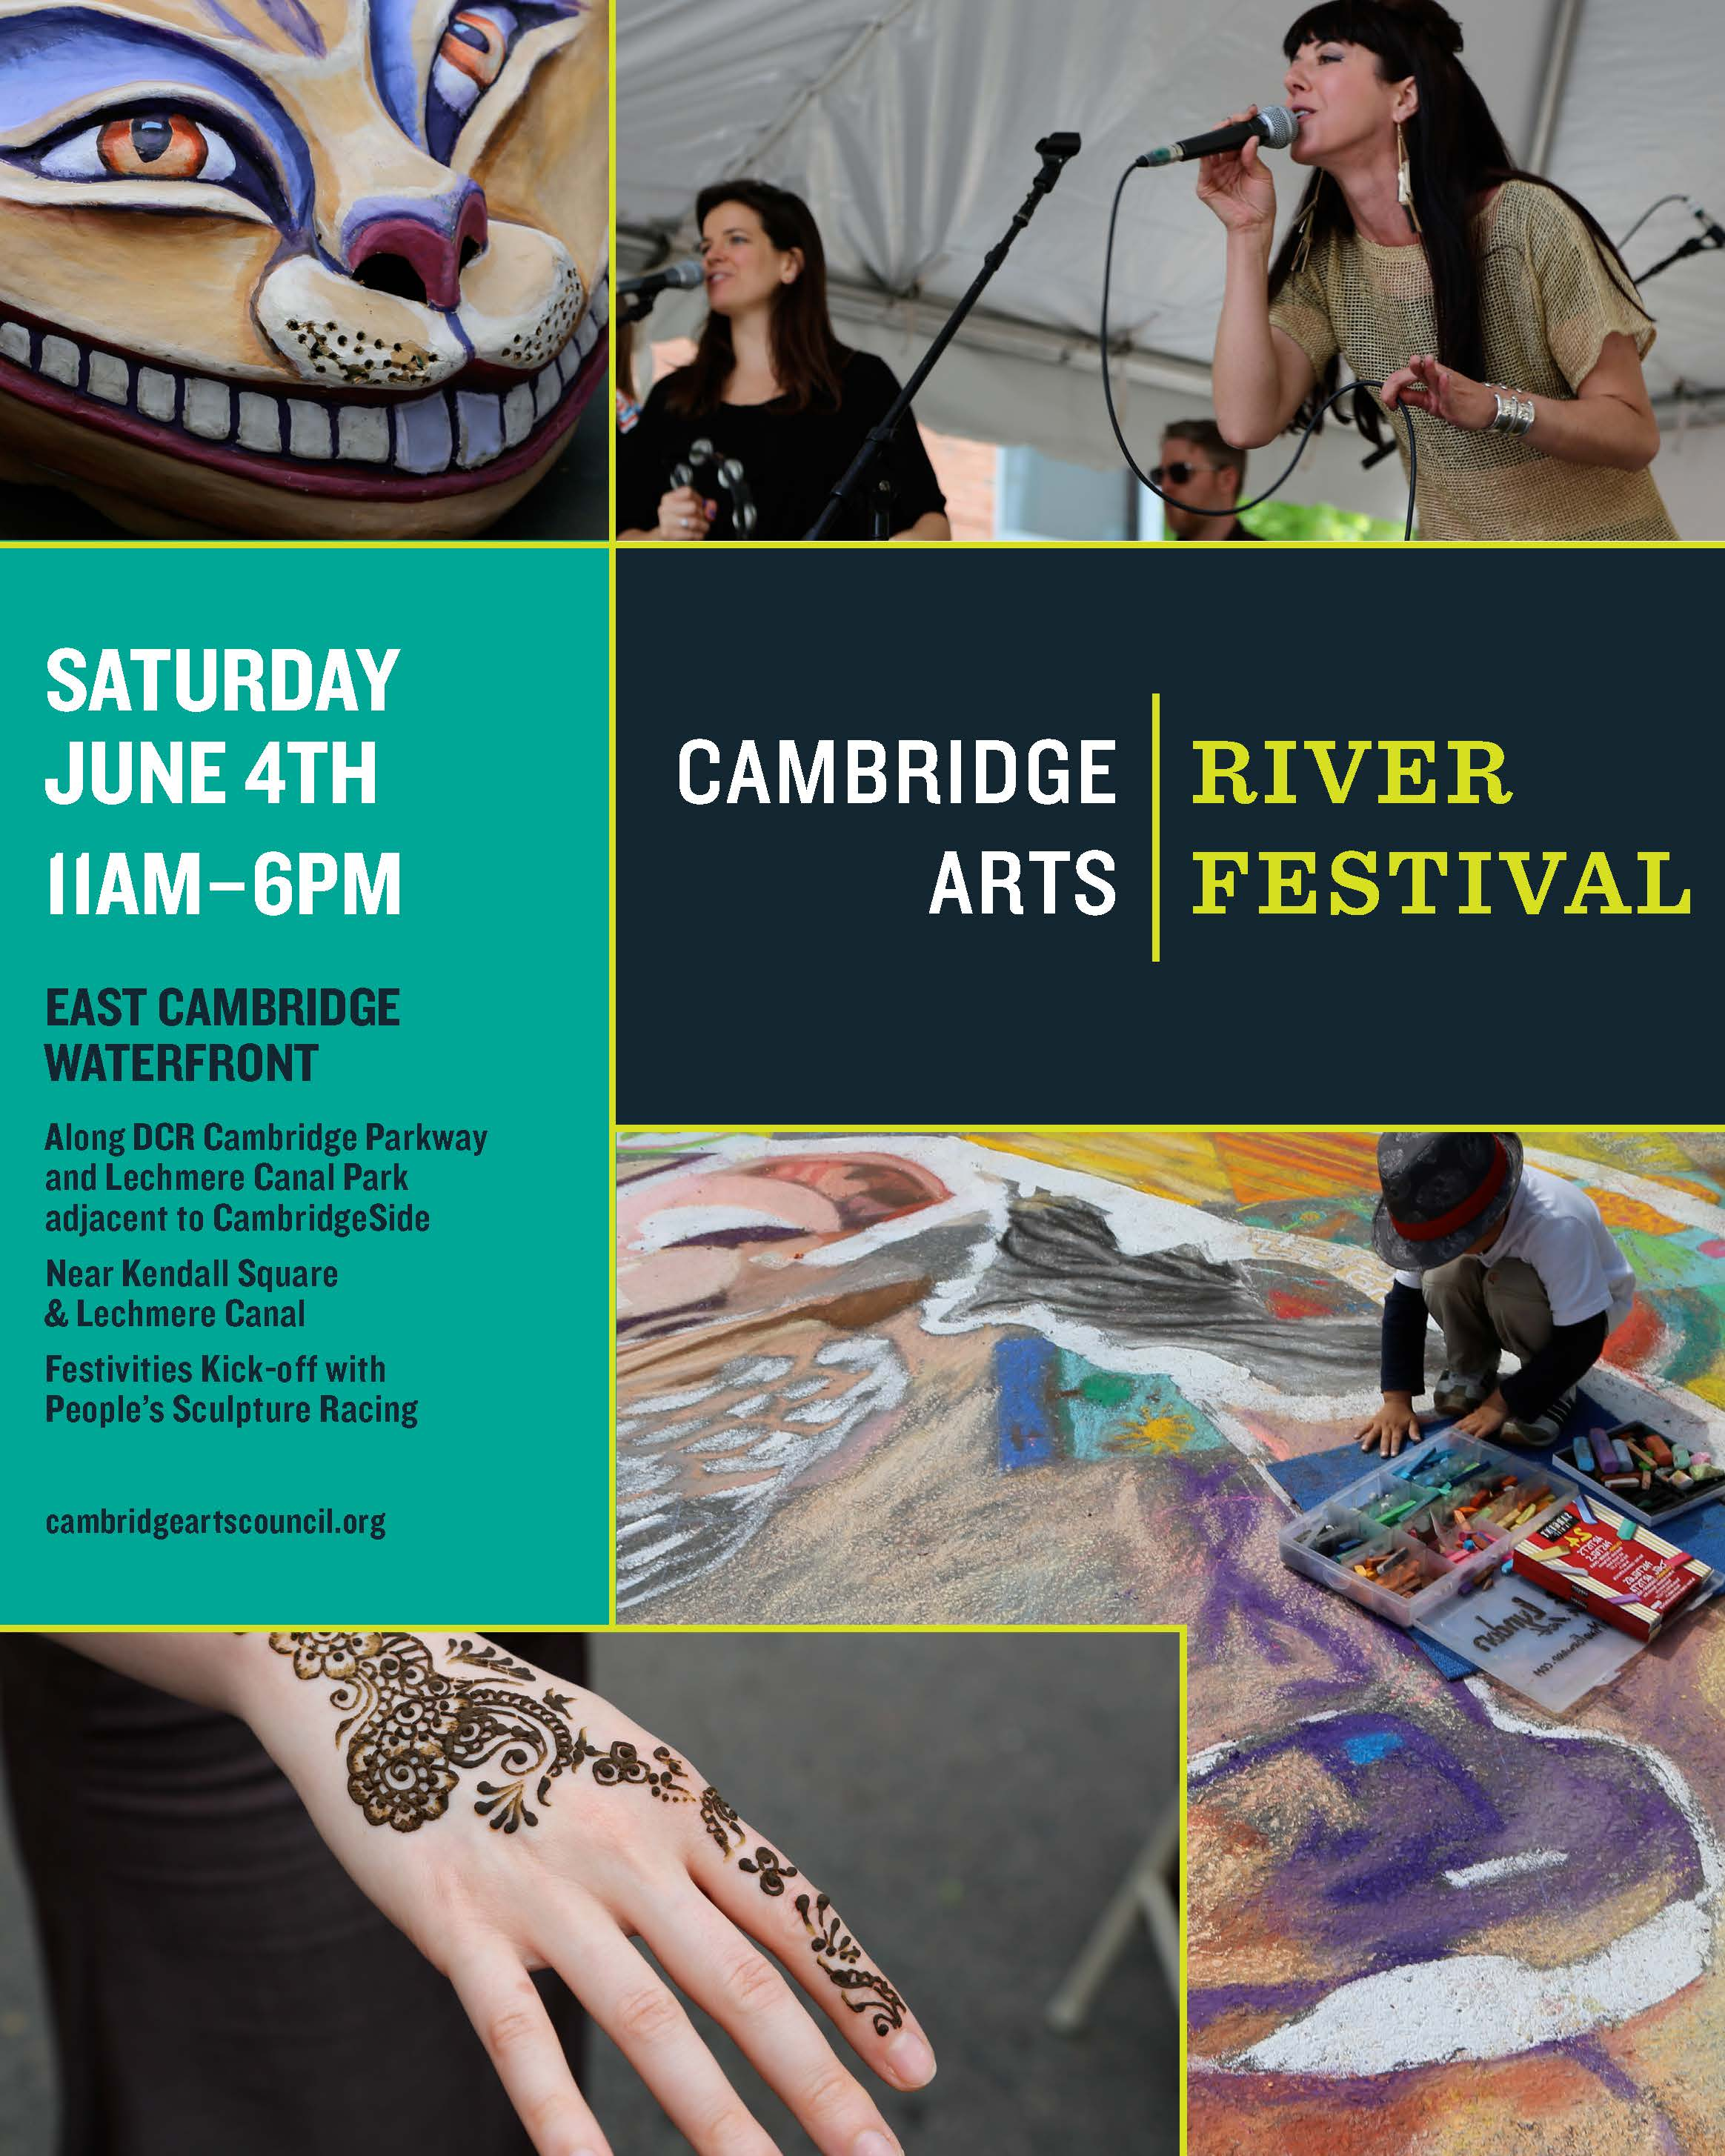 river_festival_flyer_for_event_calendar.jpg